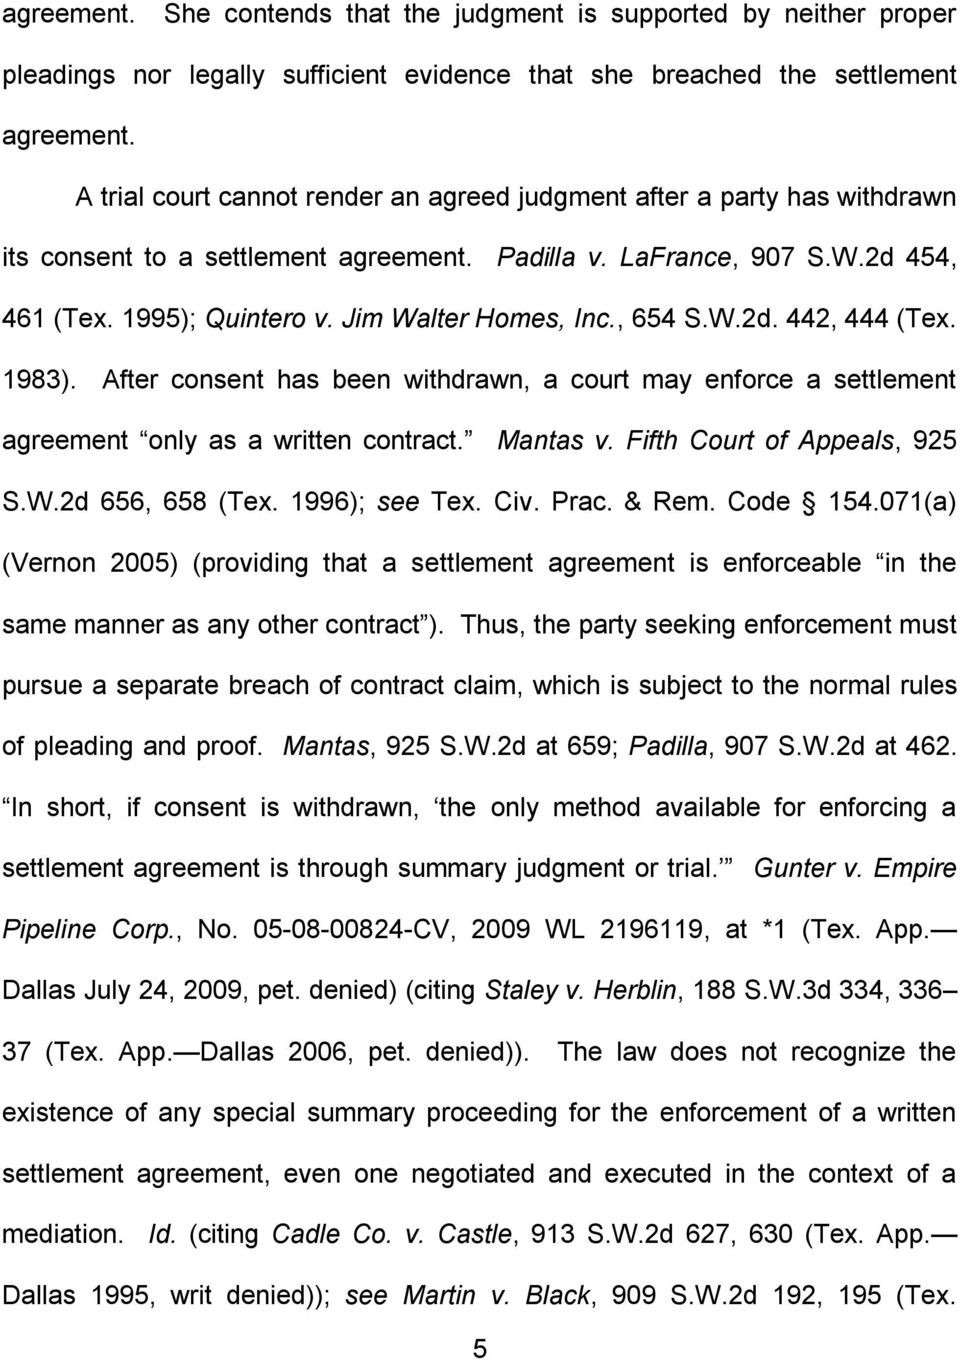 Jim Walter Homes, Inc., 654 S.W.2d. 442, 444 (Tex. 1983). After consent has been withdrawn, a court may enforce a settlement agreement only as a written contract. Mantas v.